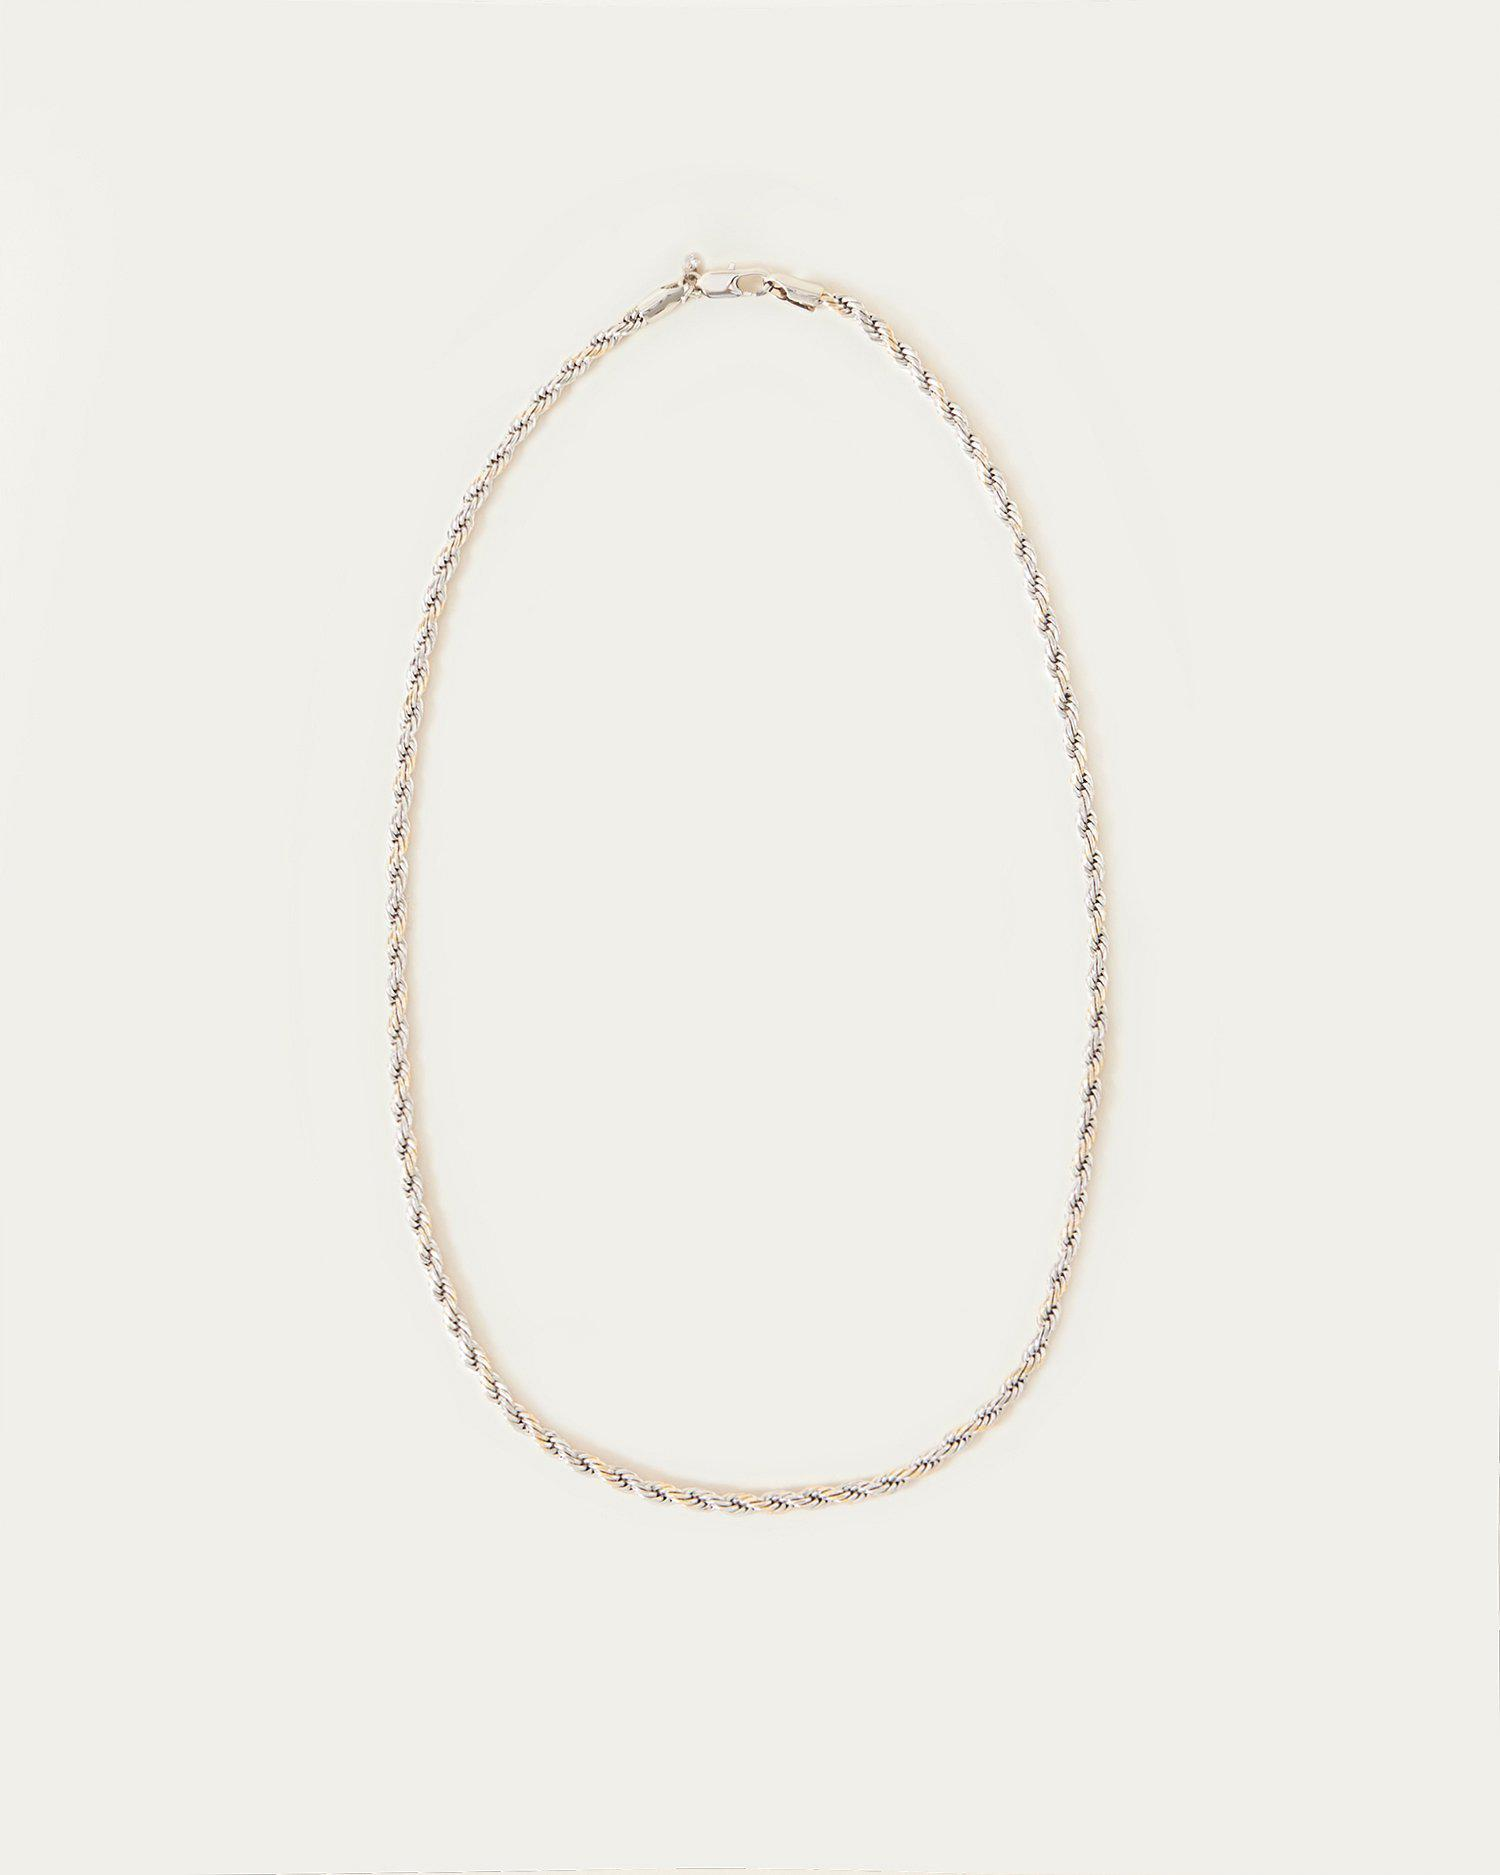 Sylvie Silver Twisted Chain Necklace